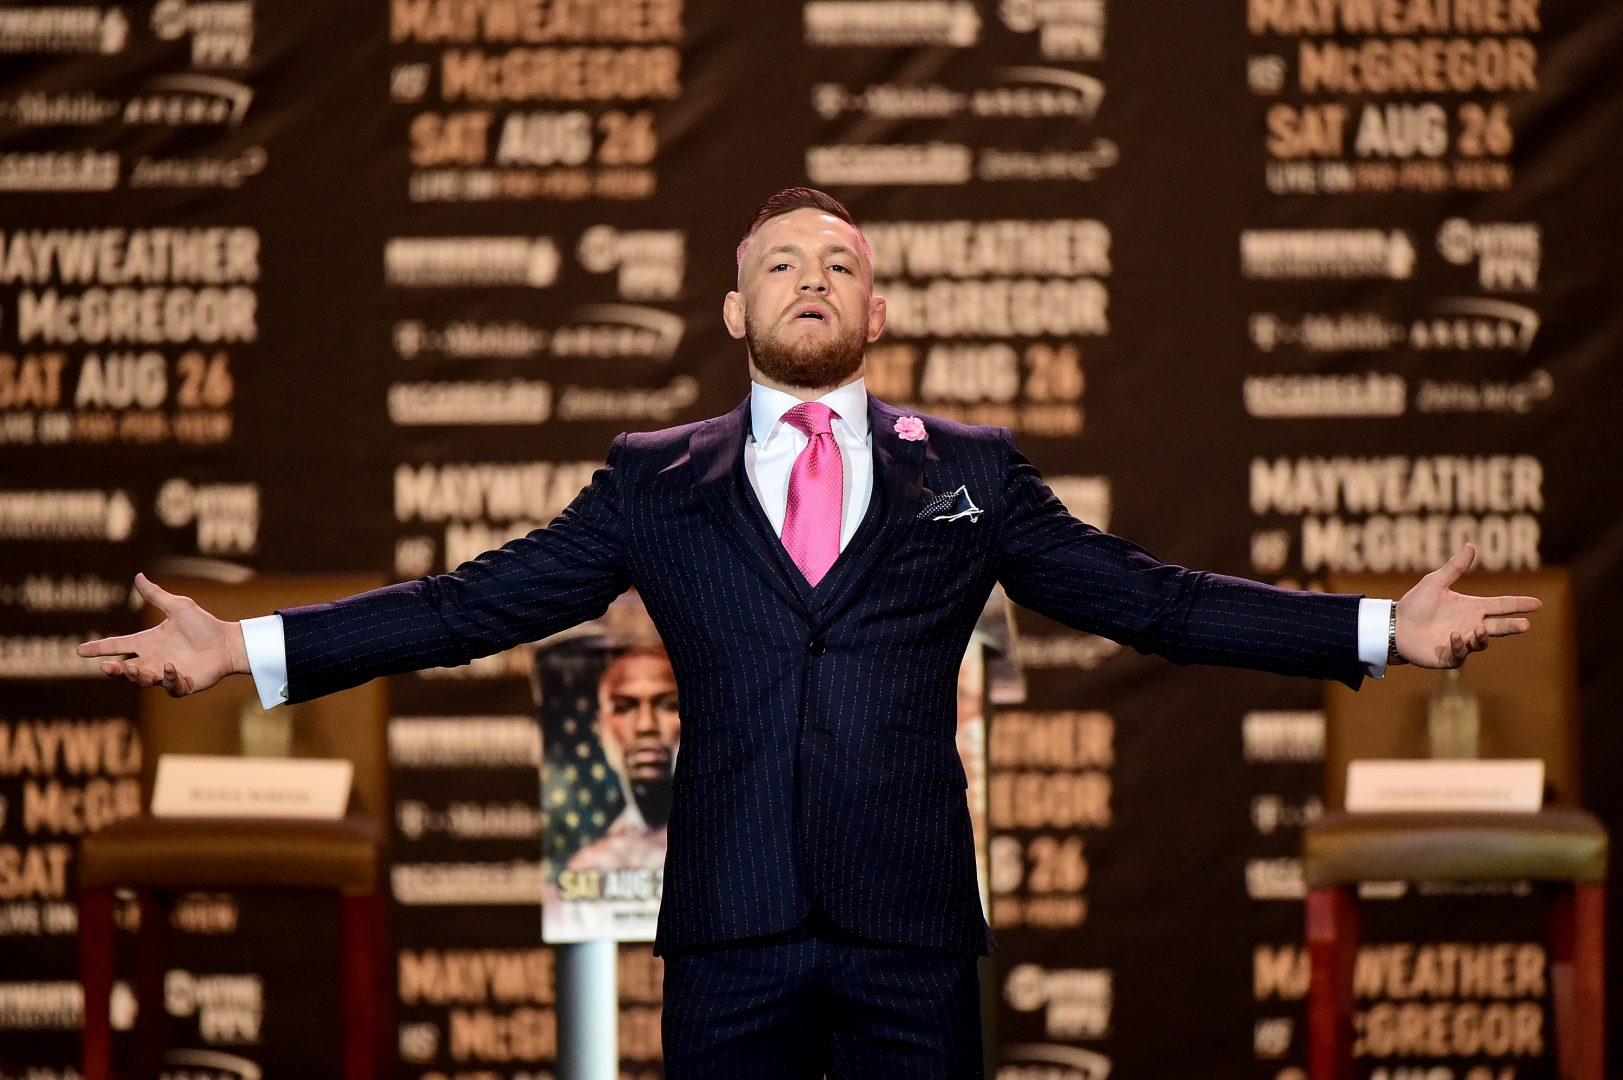 Conor McGregor in a suit.